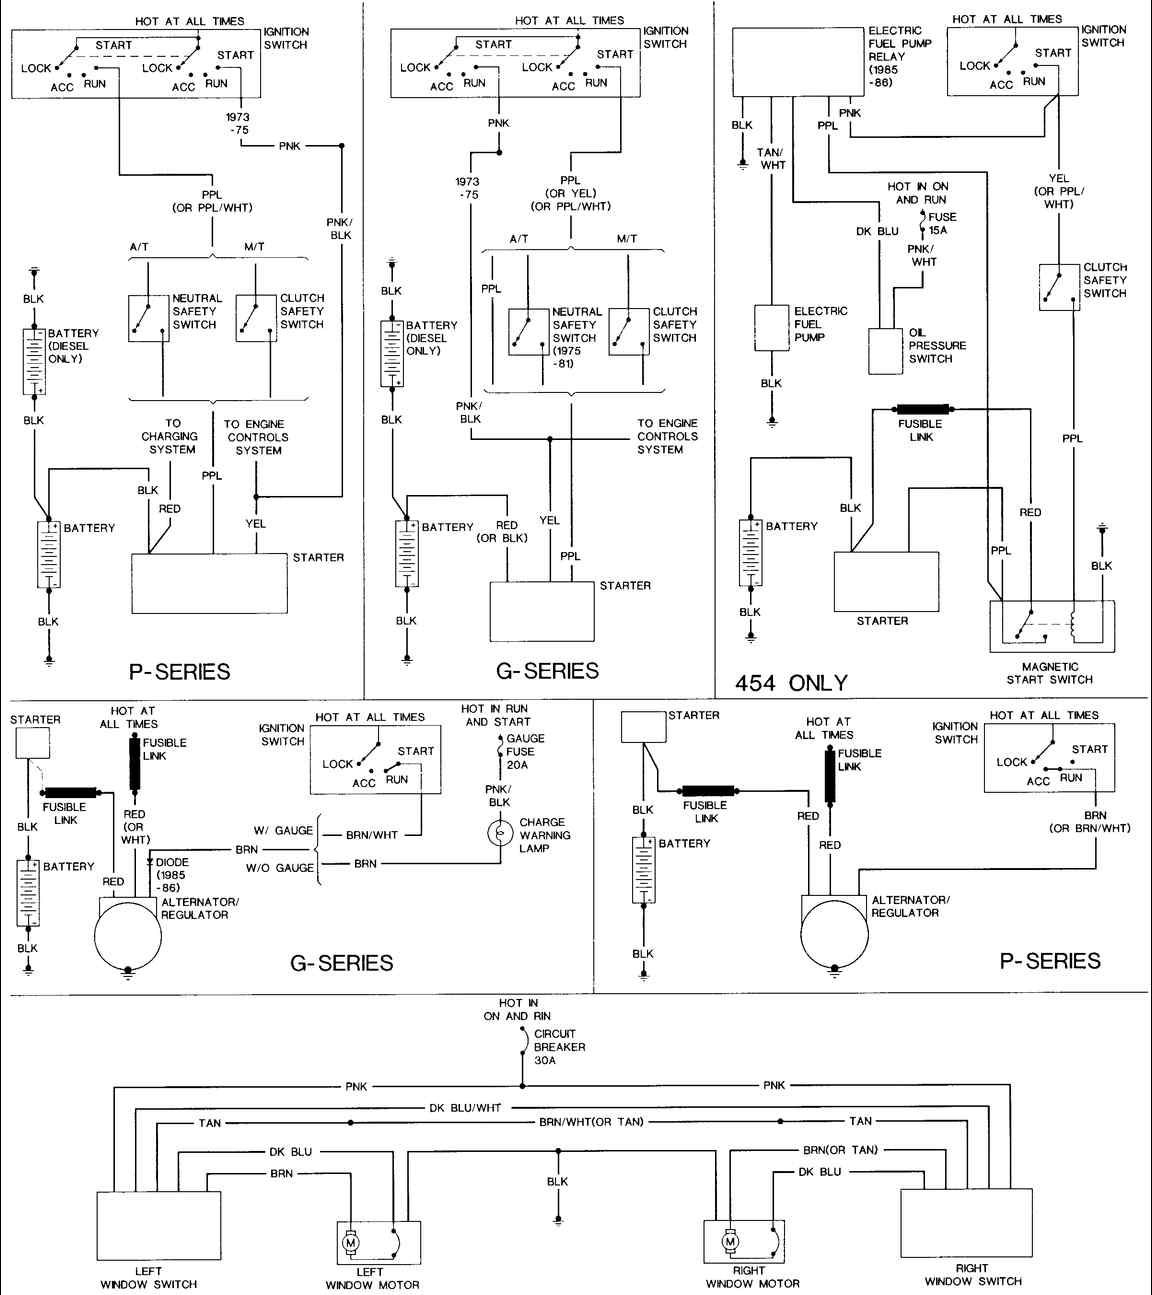 0c73623a181dc376dbb4777e2029d285 85 chevy truck wiring diagram 85 chevy van the steering column  at pacquiaovsvargaslive.co